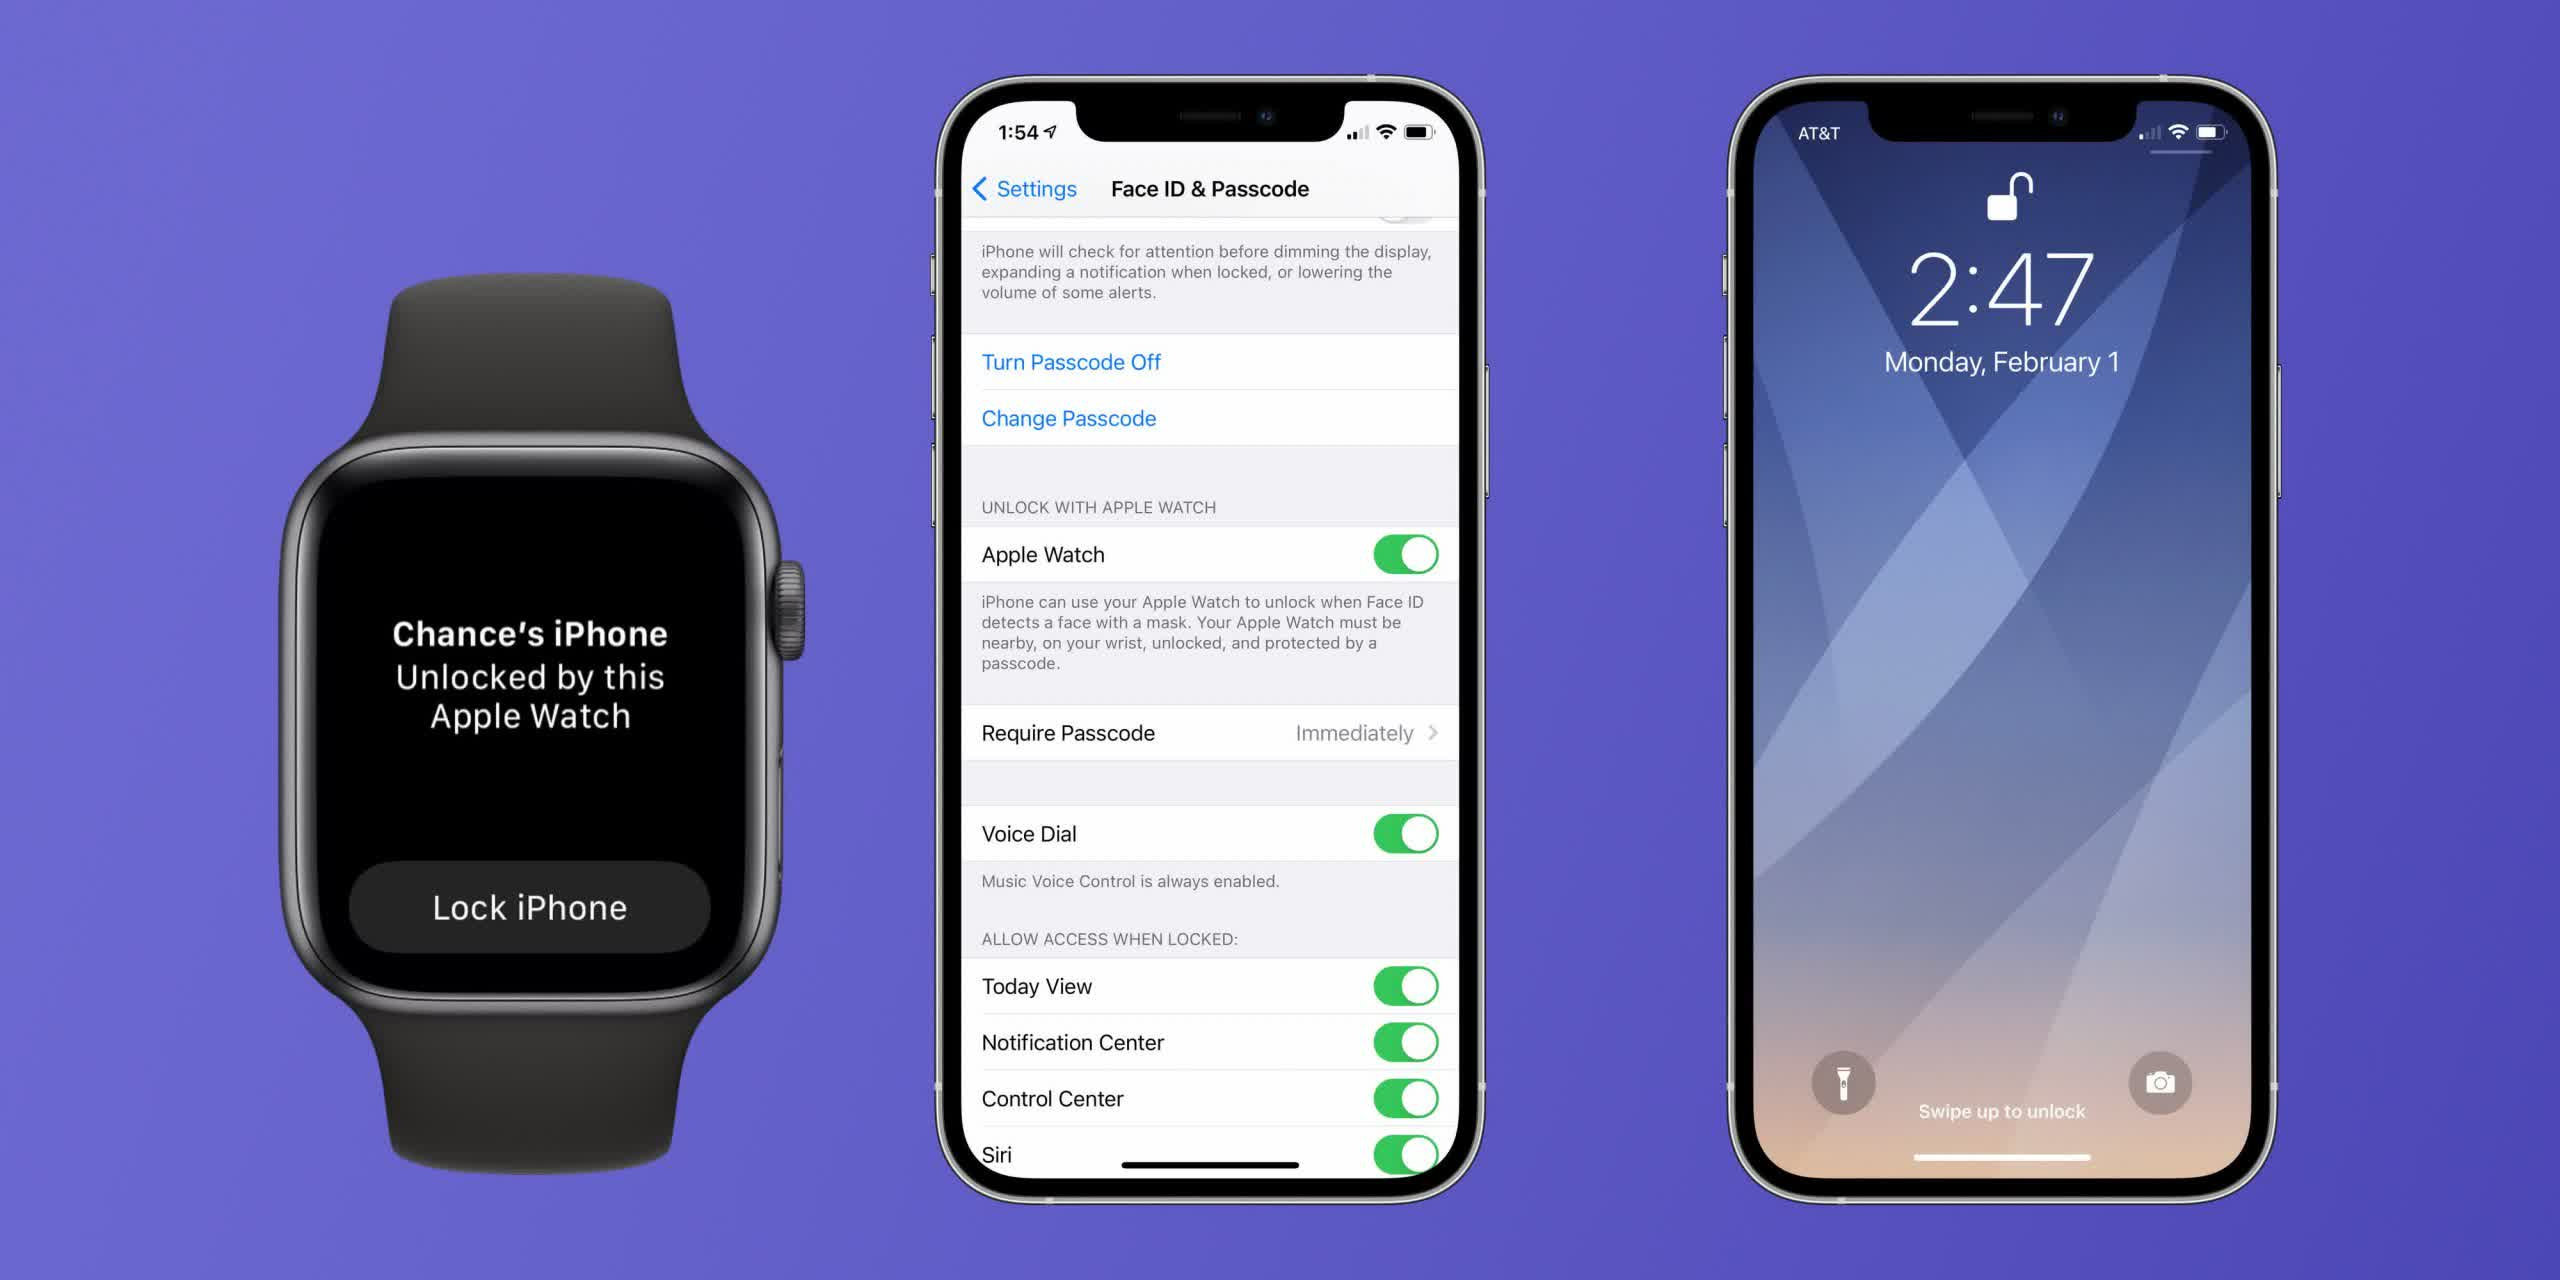 iPhone + Apple Watch mask unlock finally arrives next week with watchOS 7.4 and iOS 14.5